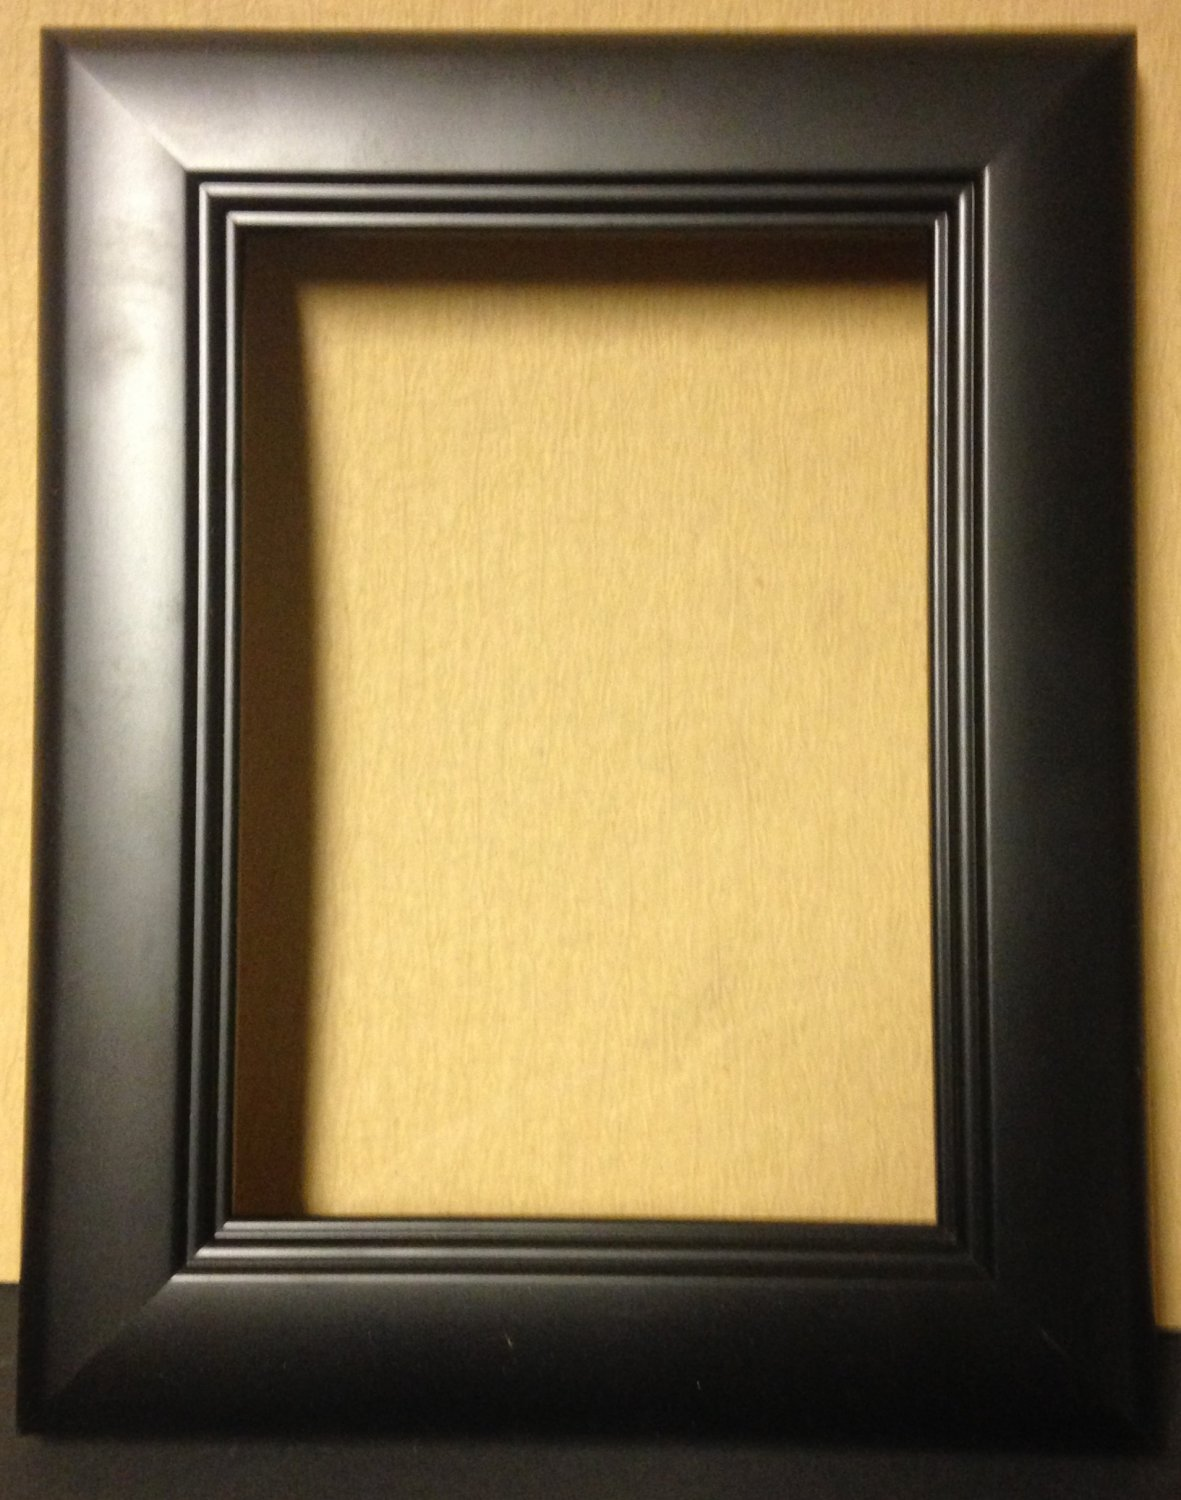 "12 x 16 1-1/2"" Black Square Step Picture Frame"